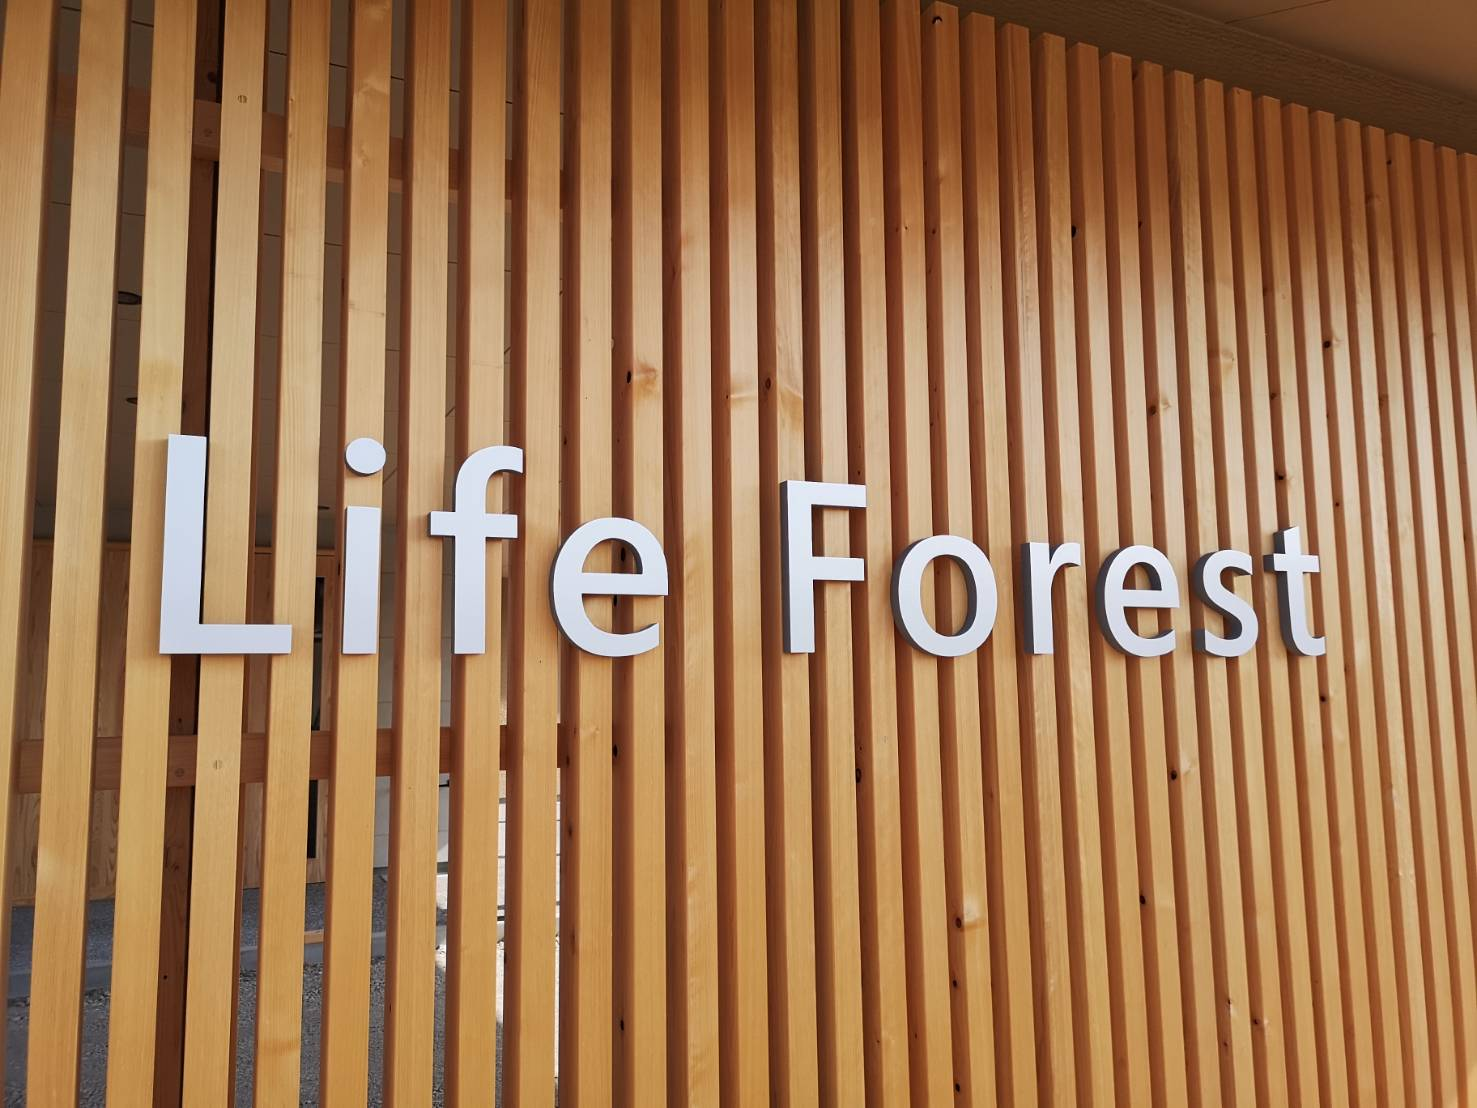 Life Forest